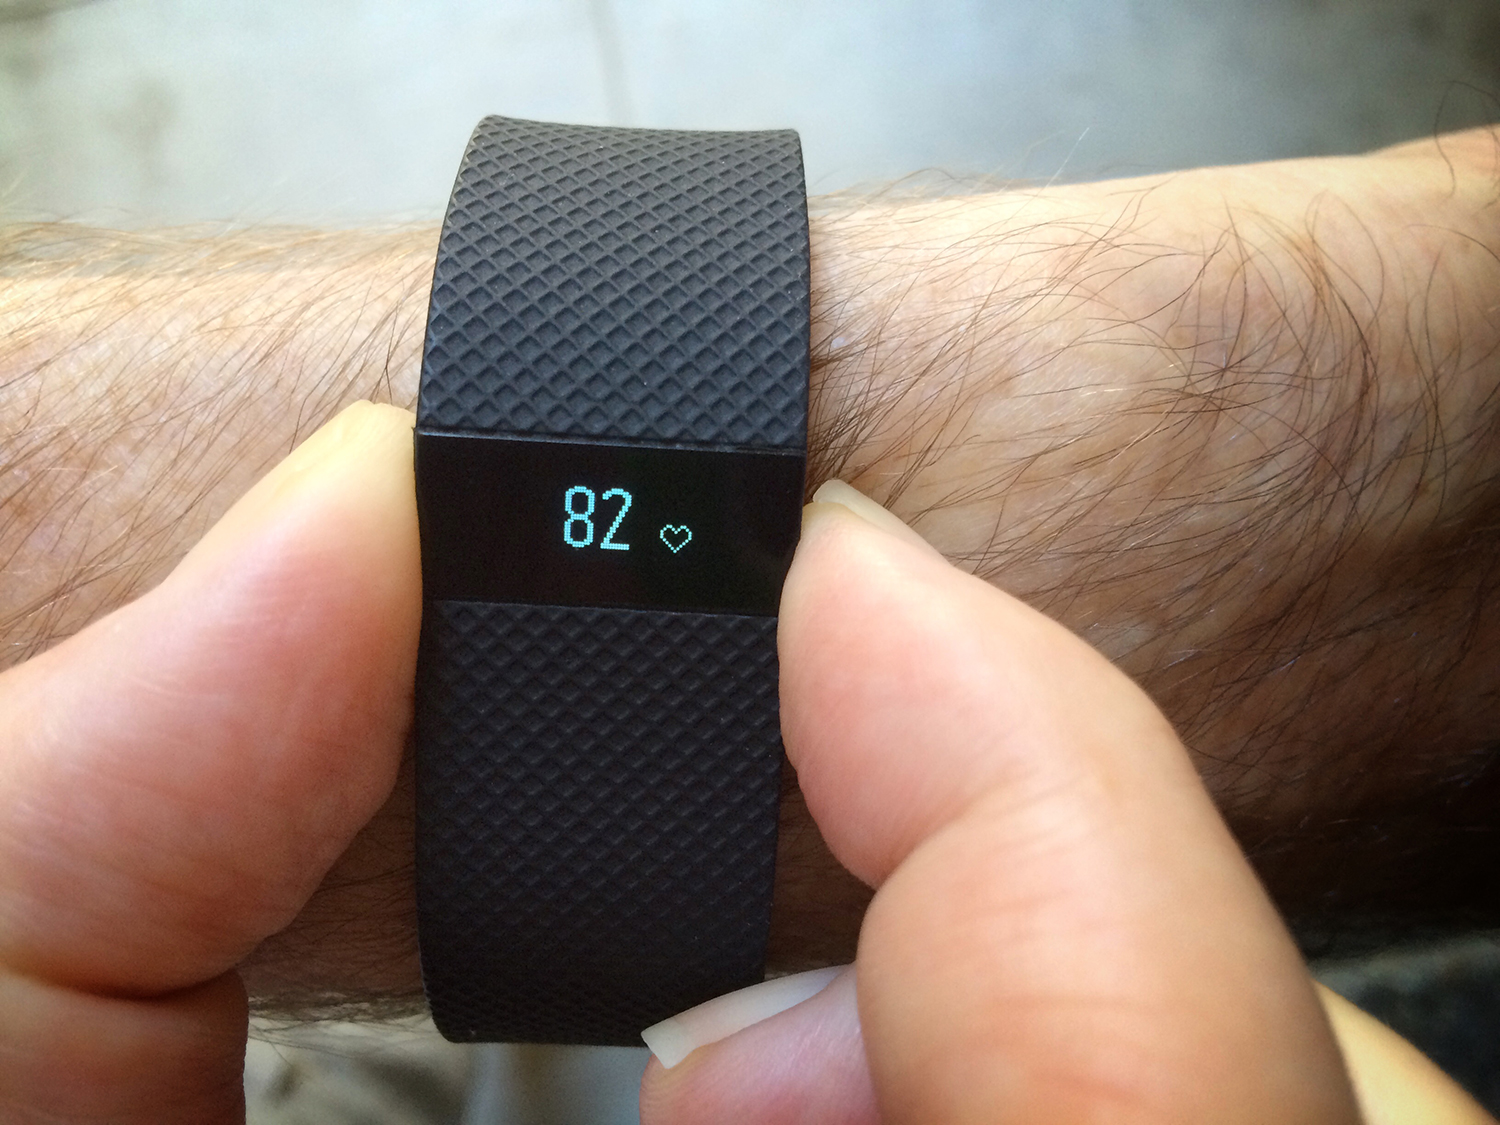 Why People Ditch Their Fitbits